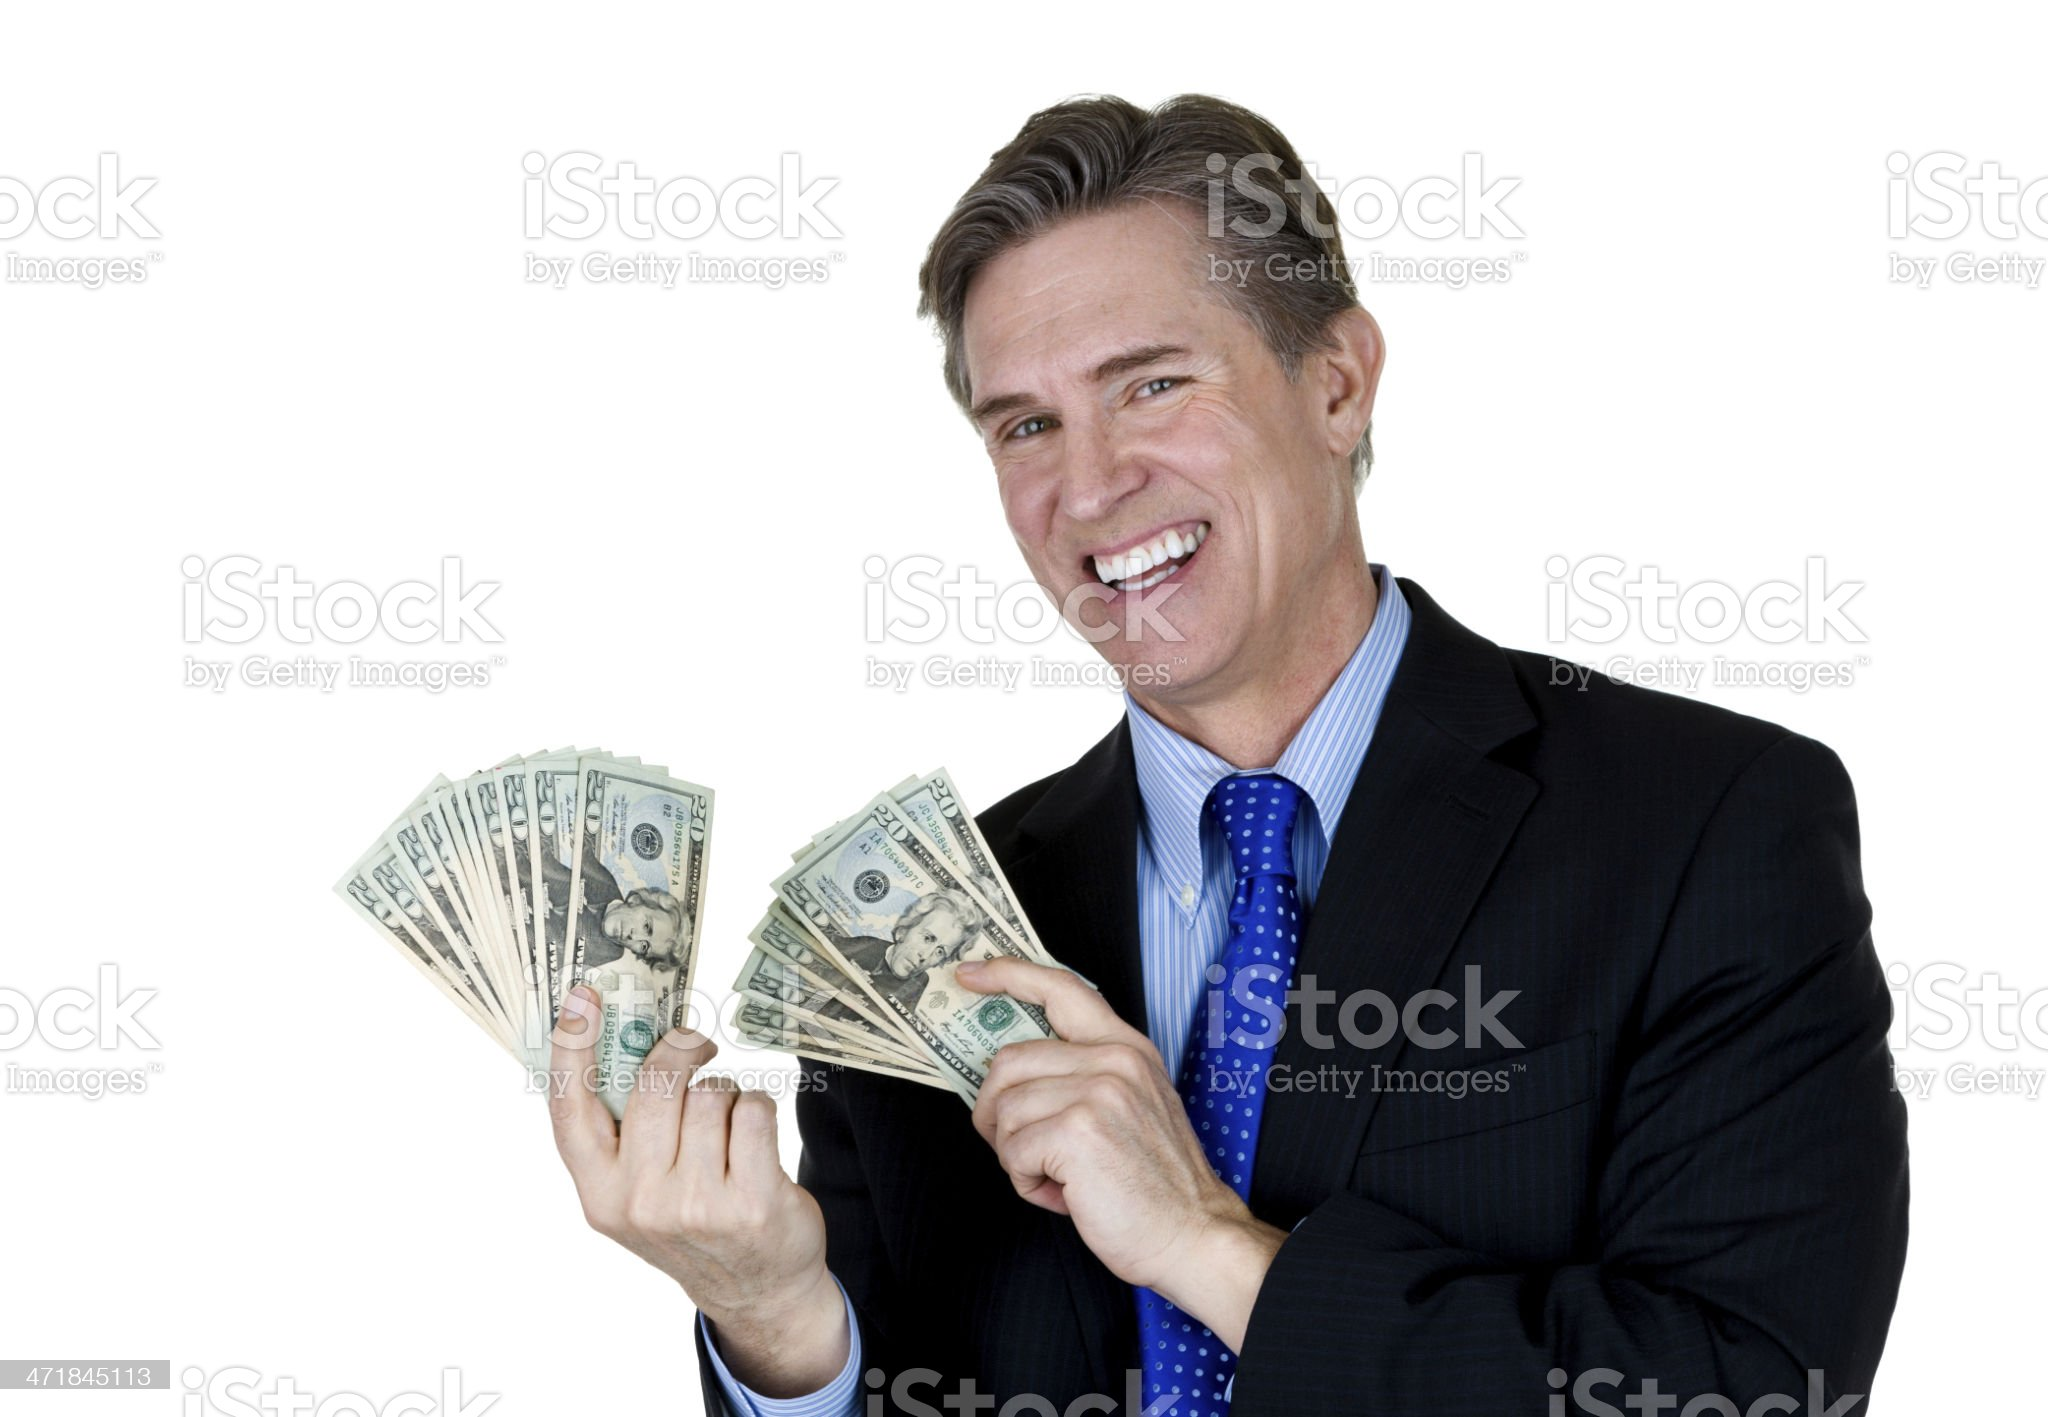 Man wearing a suit and holding money royalty-free stock photo